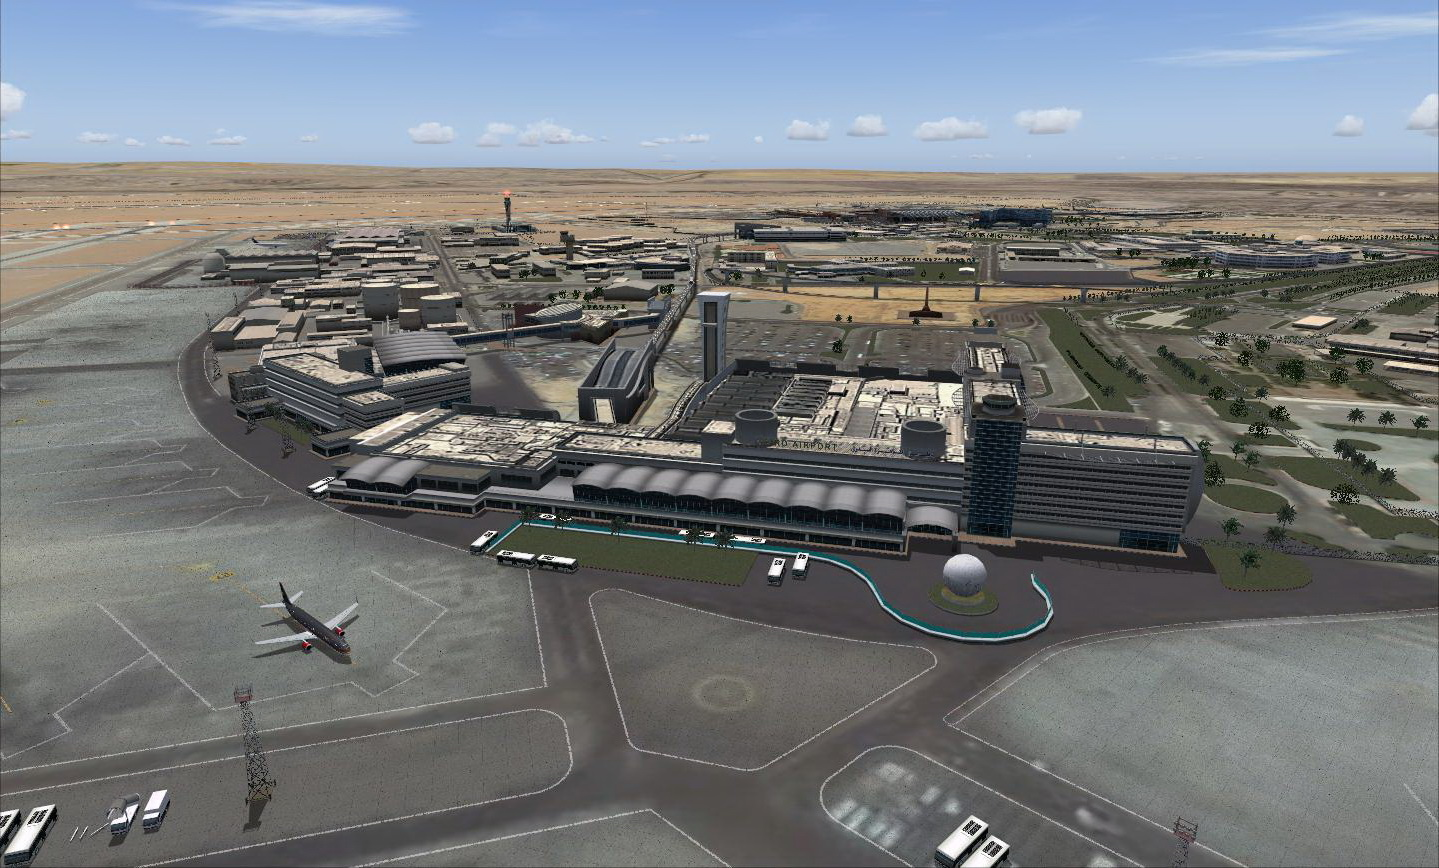 ARMI PROJECT - CAIRO INTERNATIONAL AIRPORT HECA FS2004